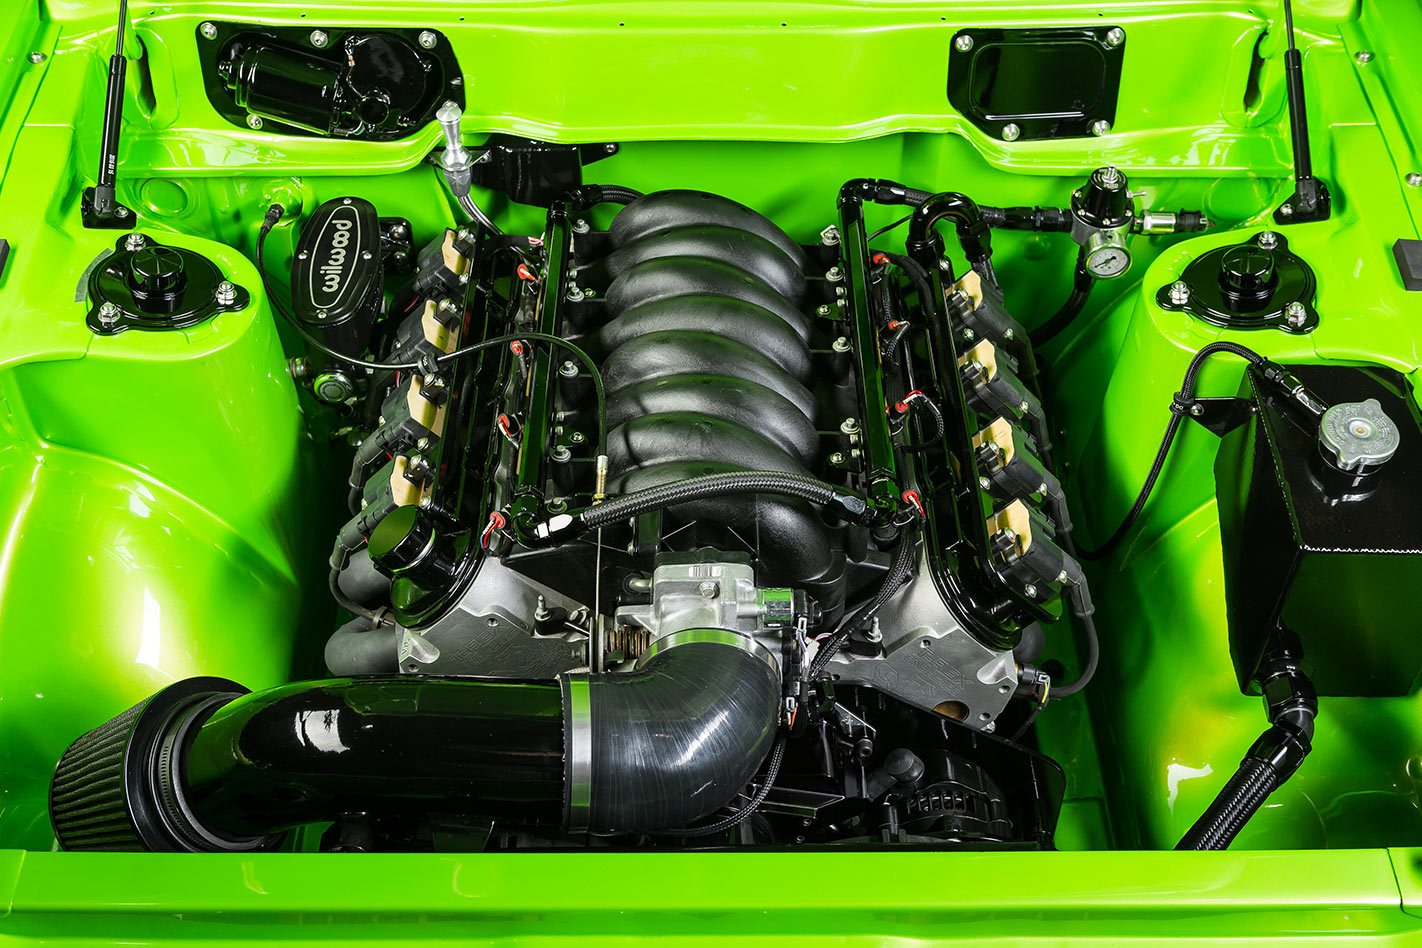 Mitsubishi Galant engine bay